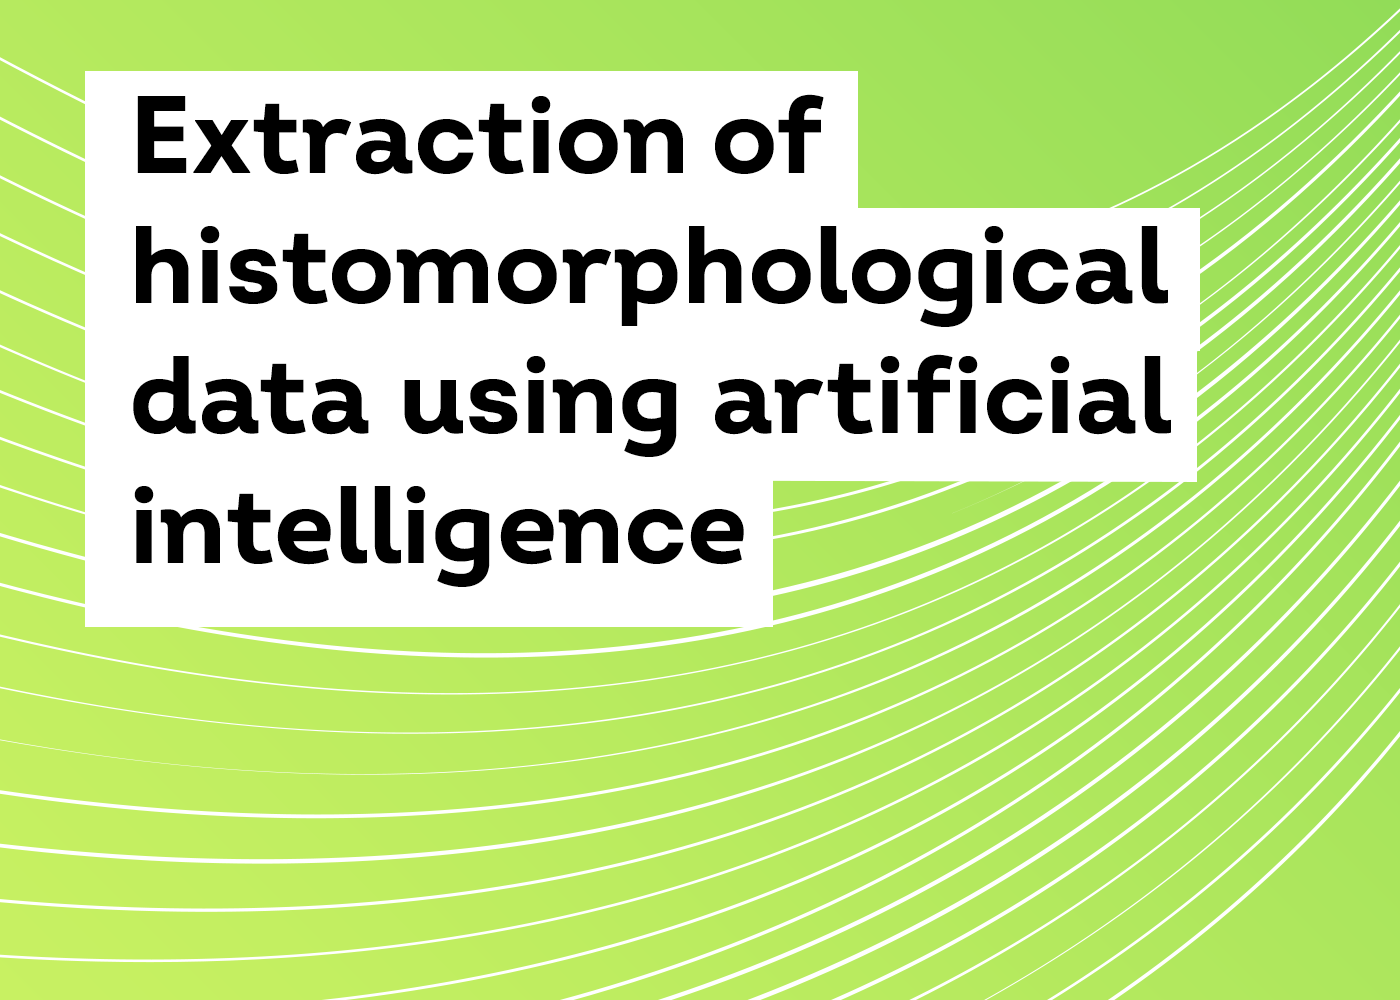 Extraction of histomorphological data using artificial intelligence